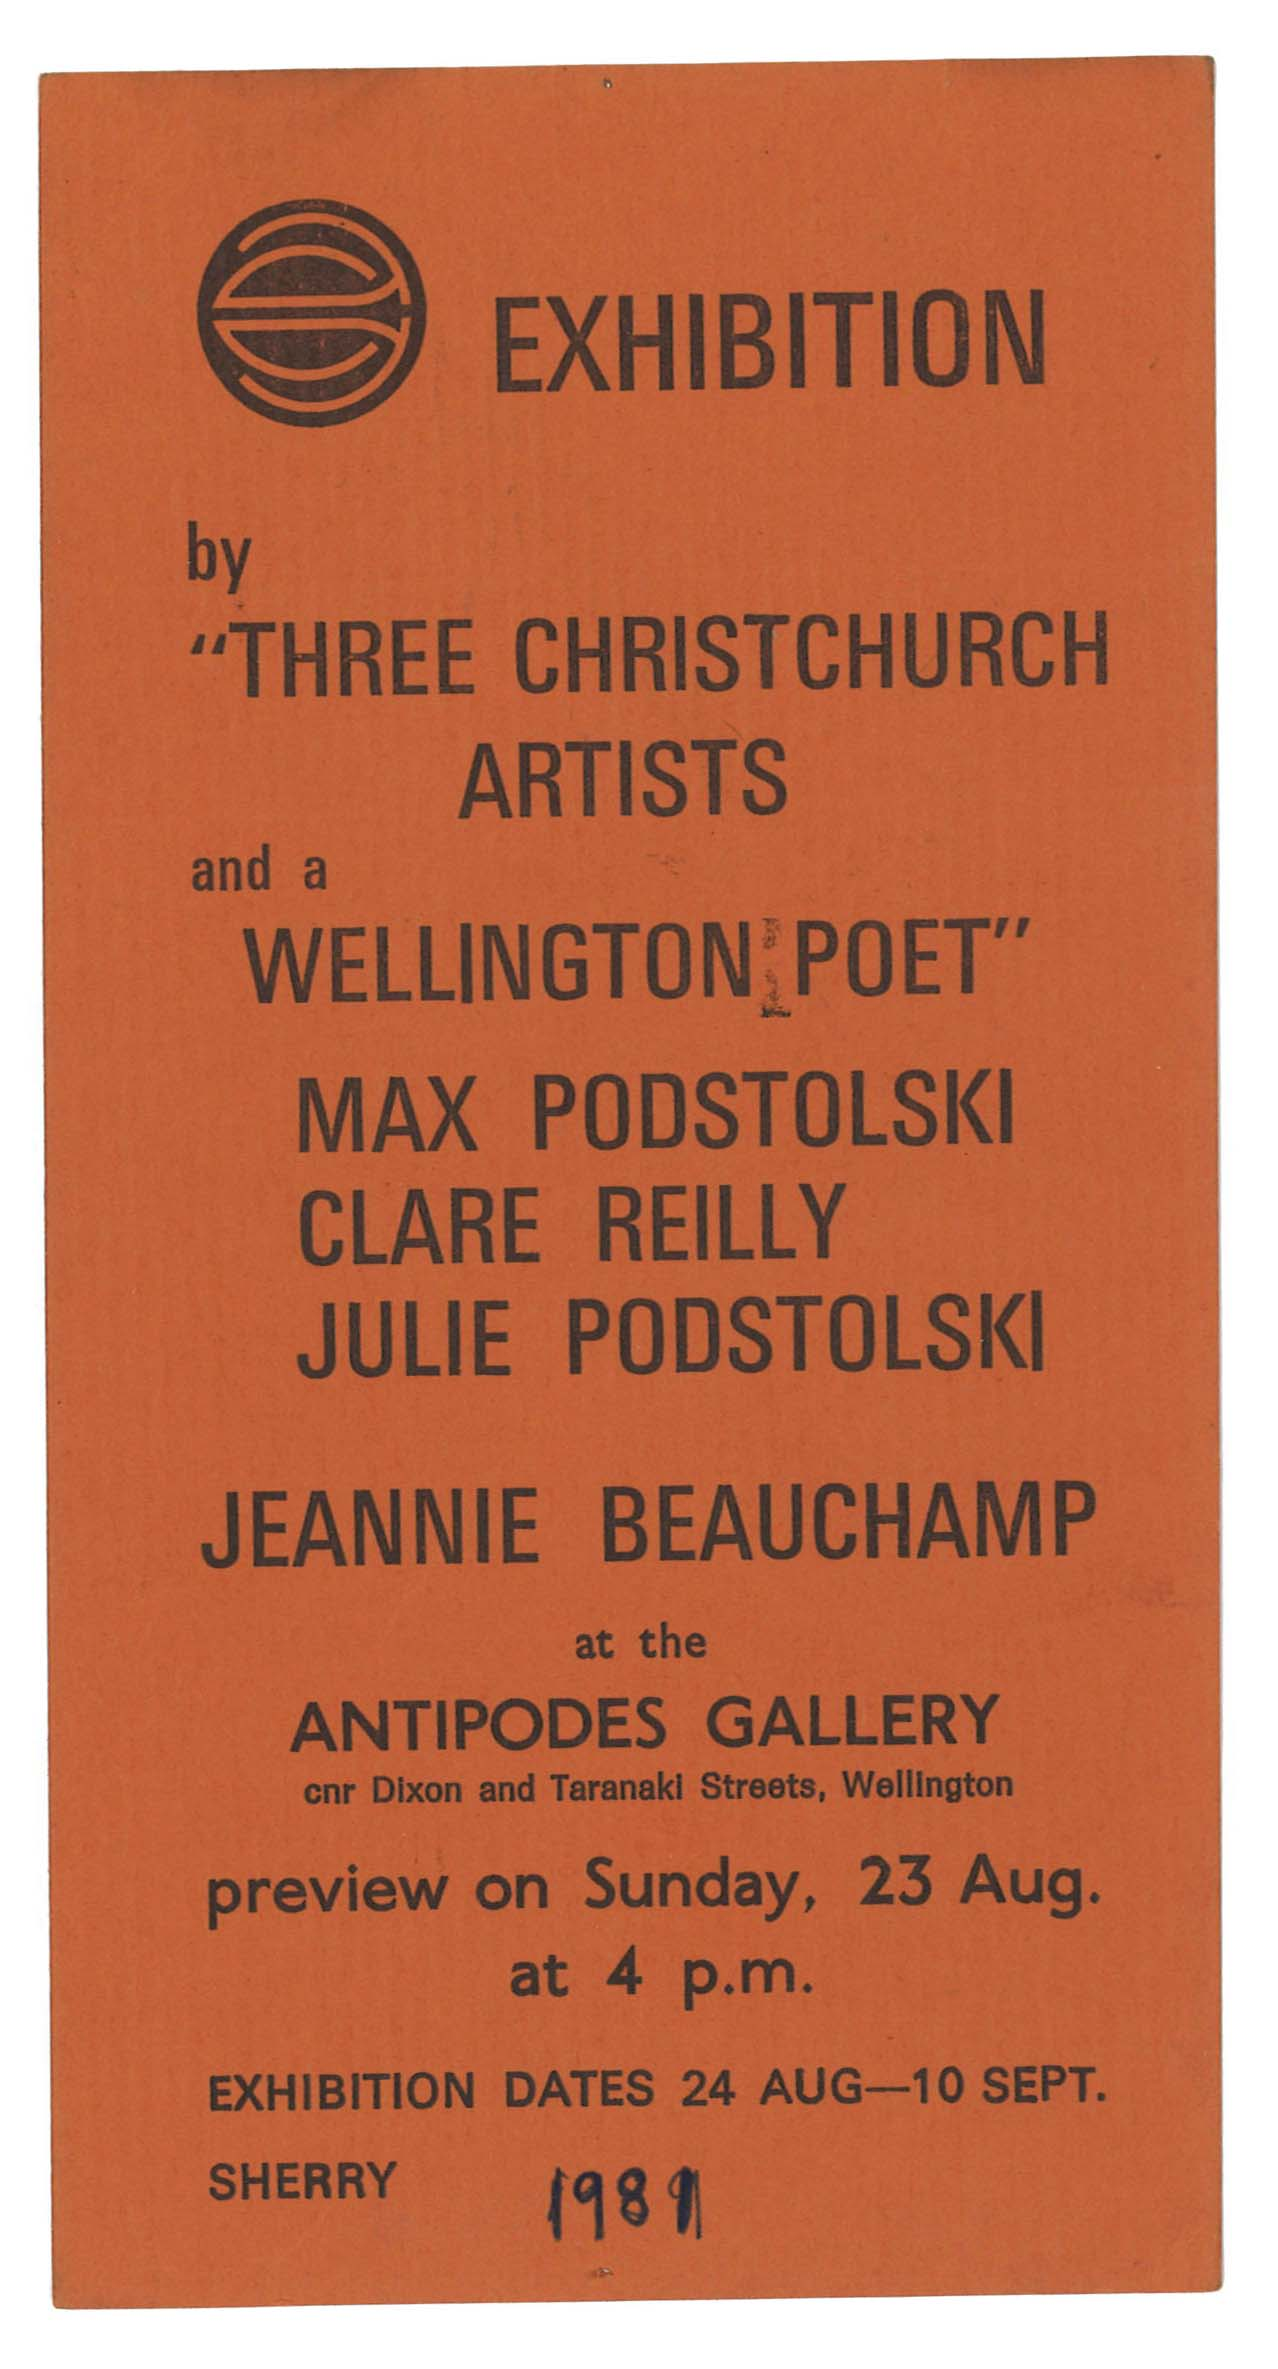 Archive of exhibition invitations julie podstolski abstract realism three christchurch artists and a wellington poet antipodes gallery wellington stopboris Images